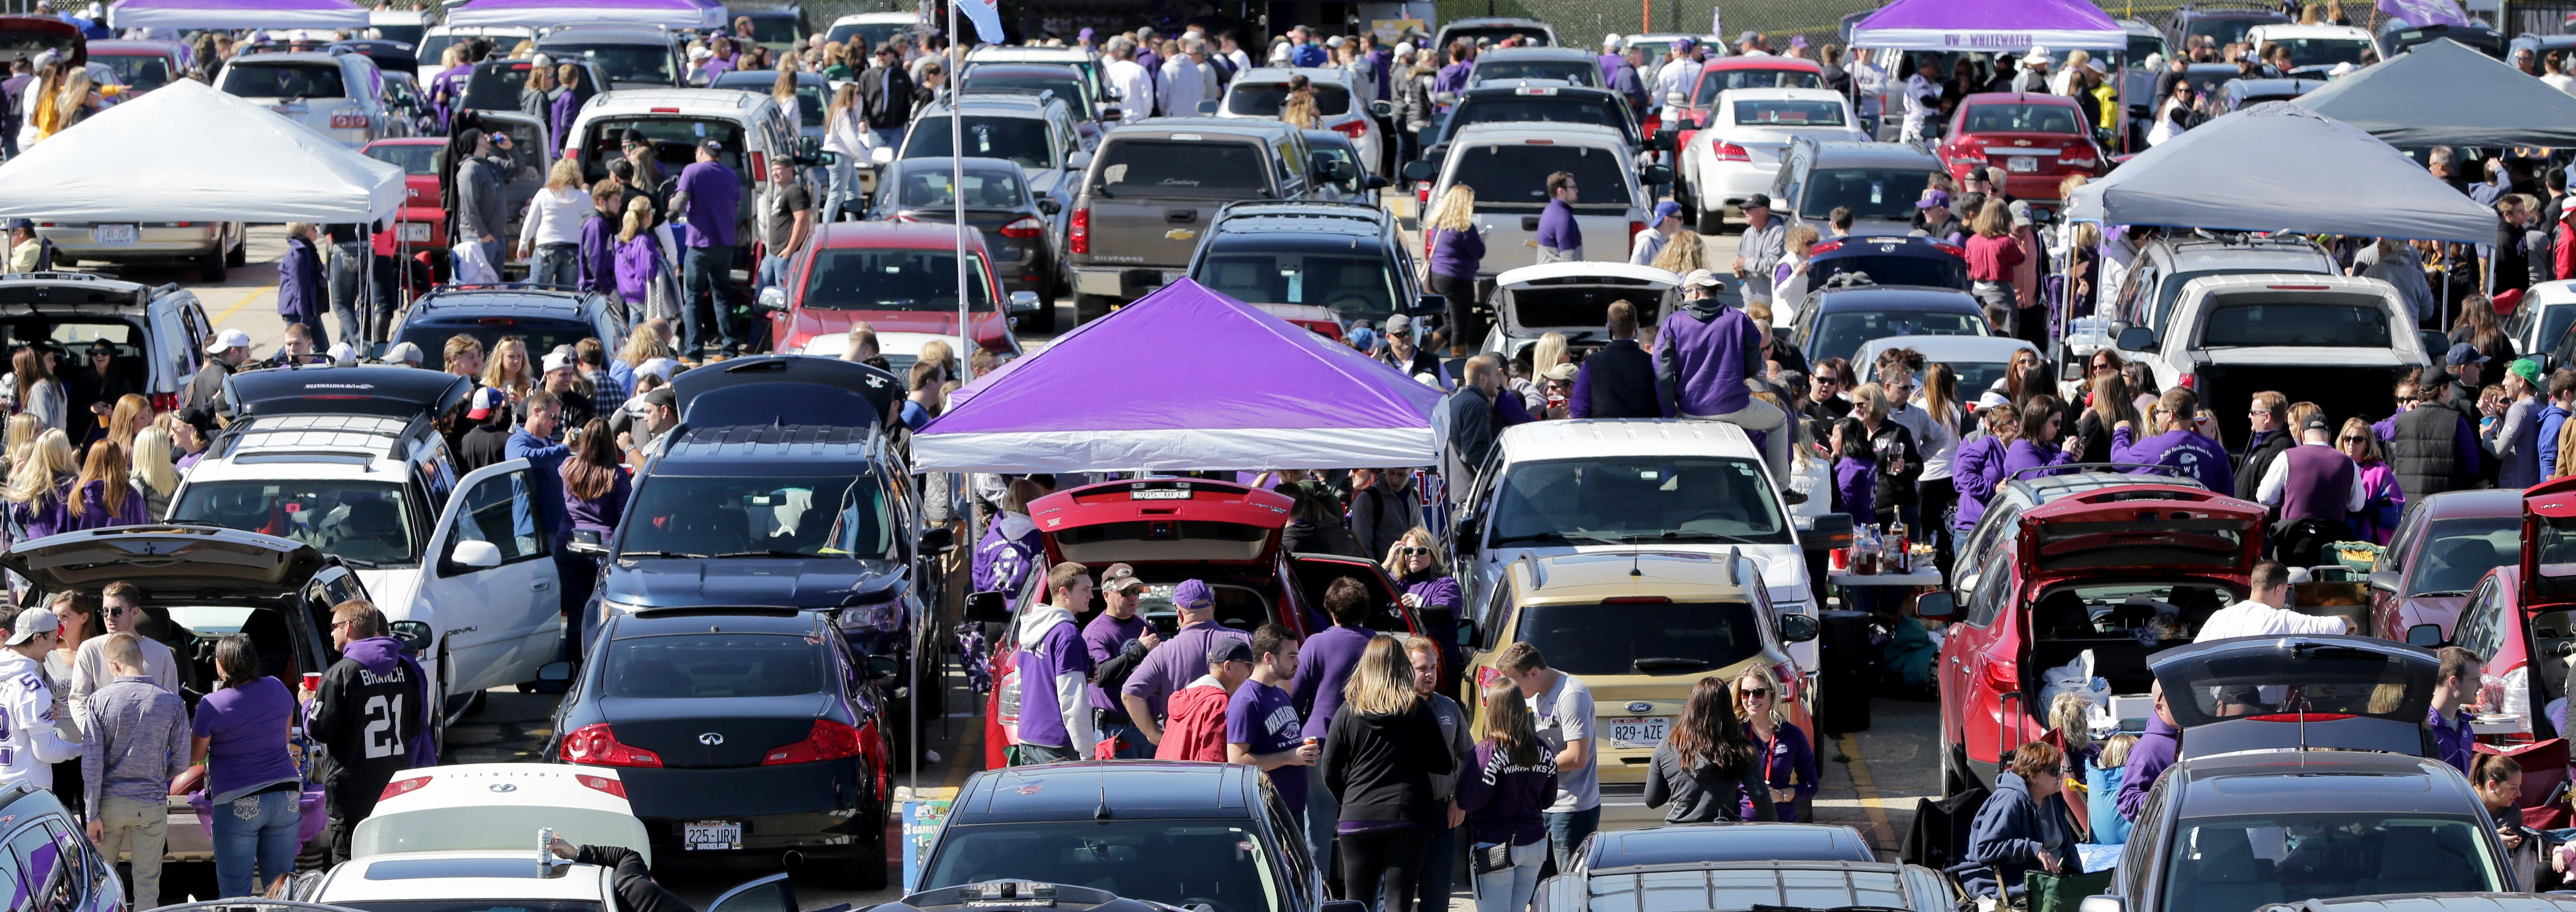 Image: Tailgate parking lot